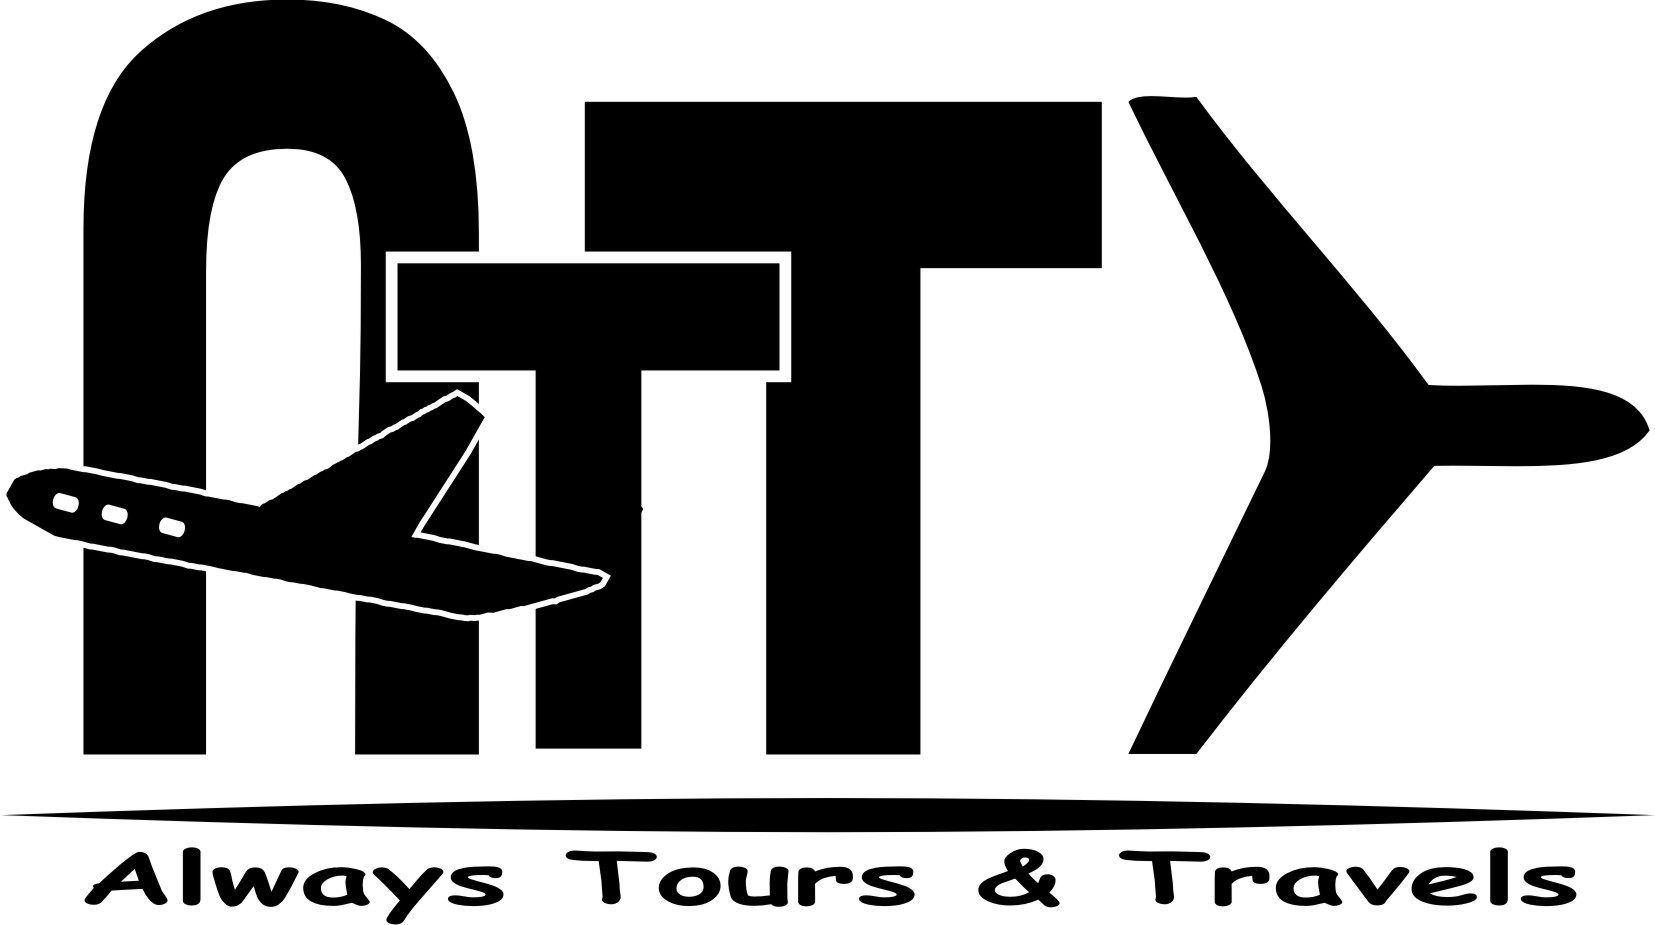 ALL-WAYS TOURS & TRAVELS